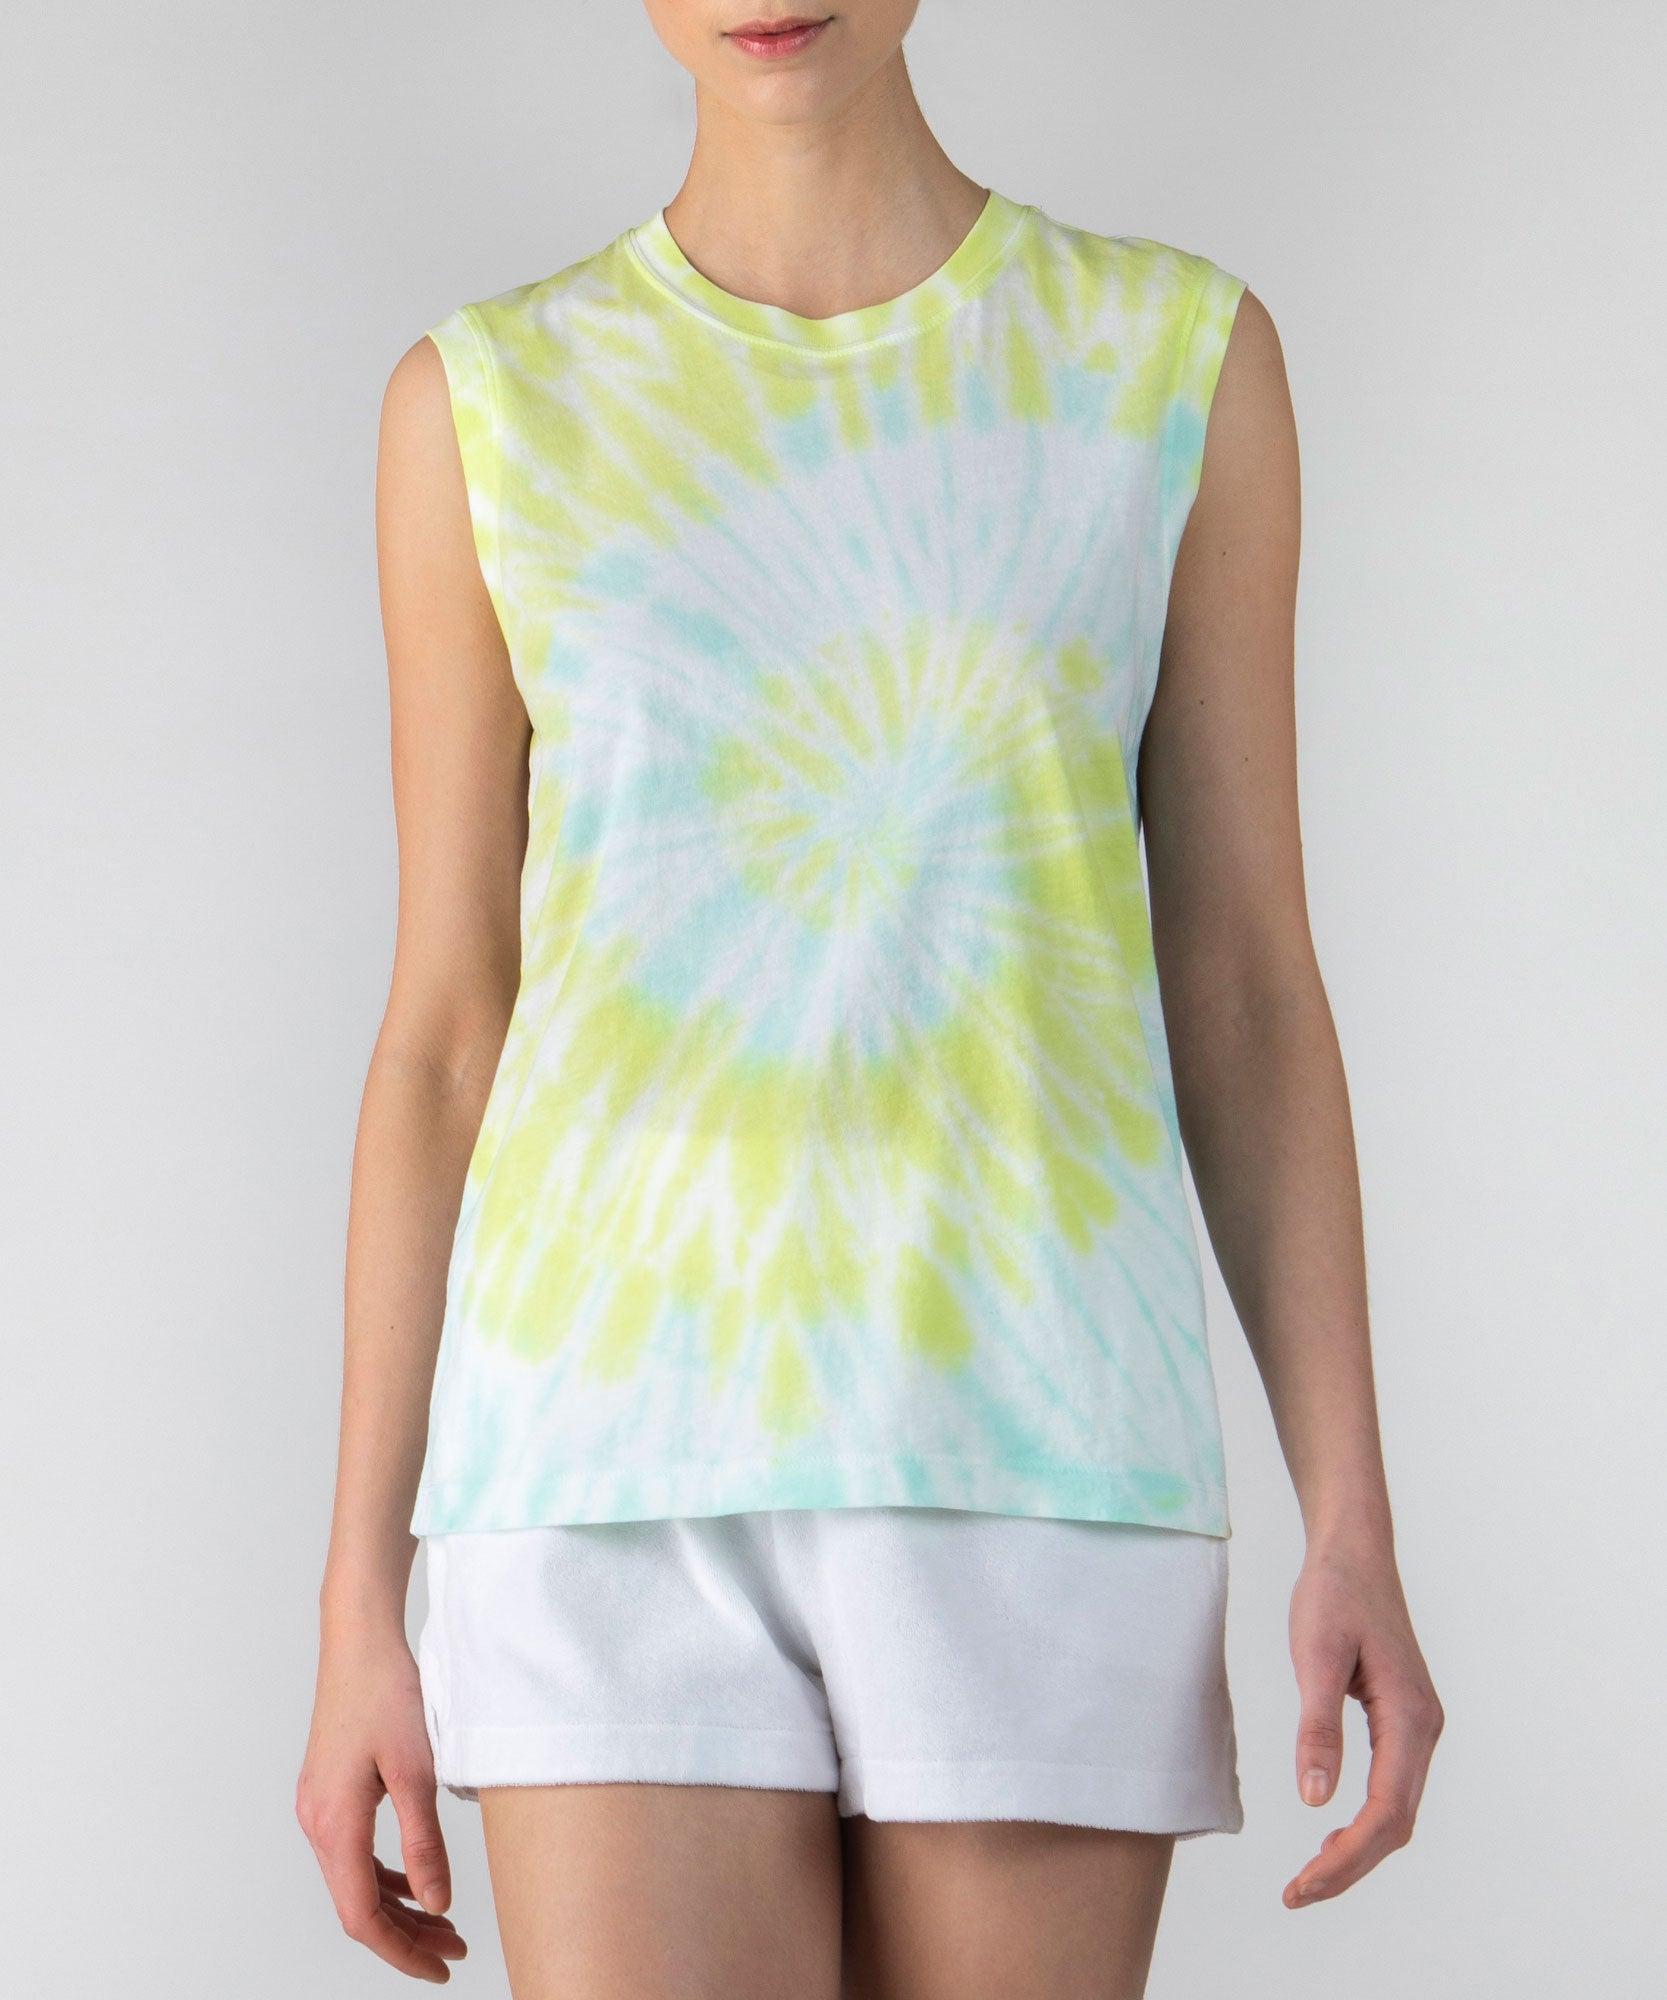 White Tie Dye Combo Classic Jersey Sleeveless Boy Tee - Women's Cotton Sleeveless T-shirt by ATM Anthony Thomas Melillo